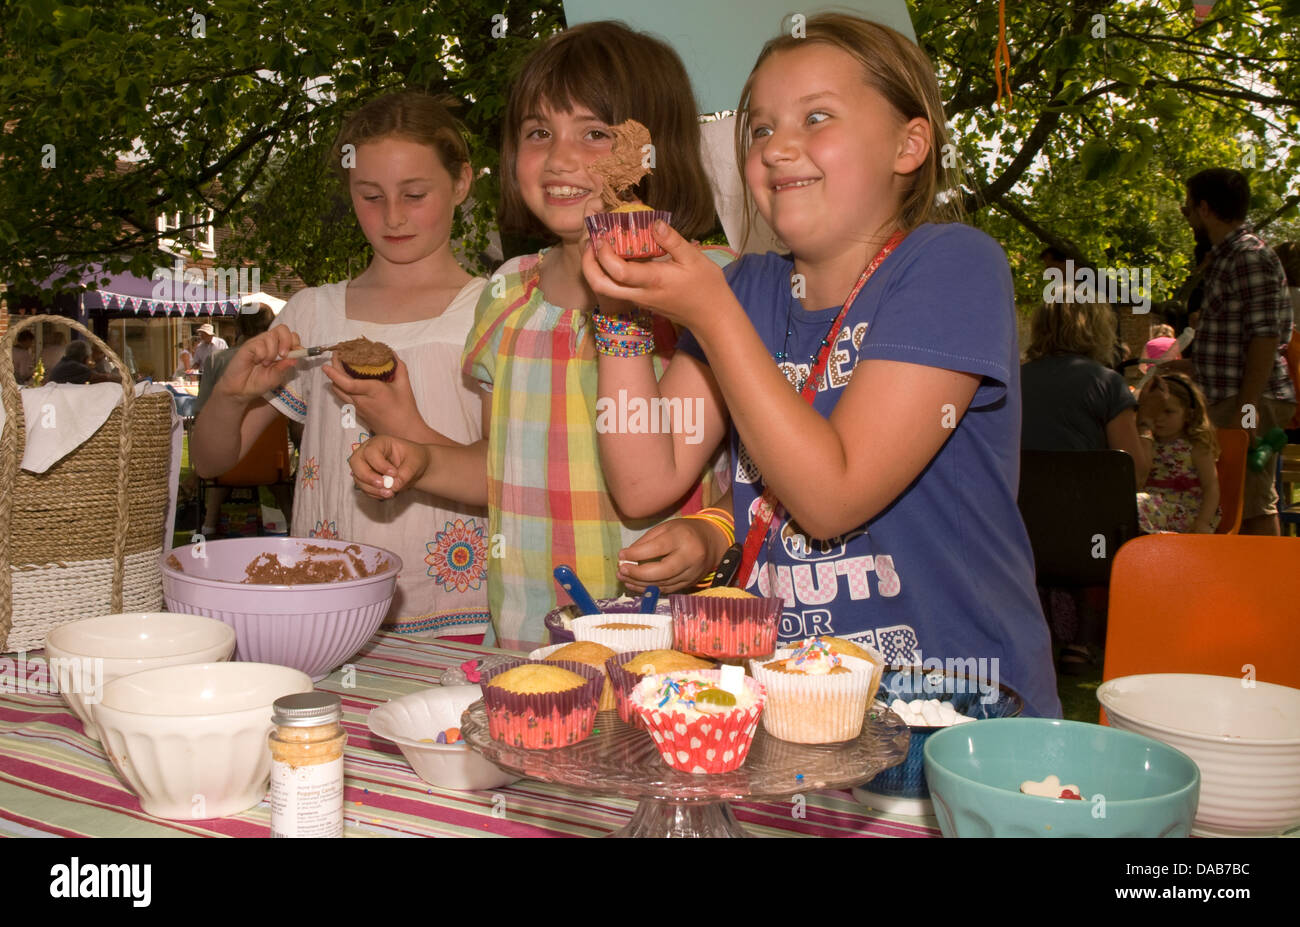 Youngsters at cake stall decorating/icing their own cake at a summer fete, East Meon, Hampshire, UK. Stock Photo